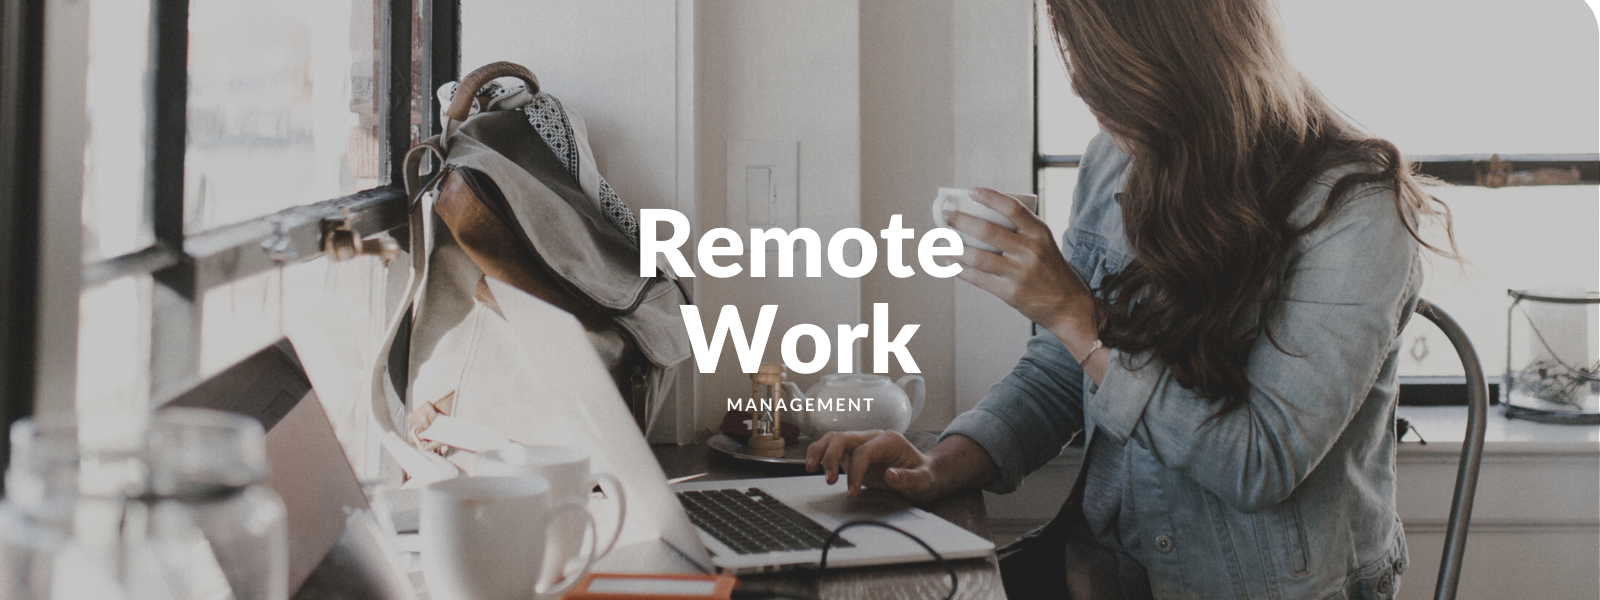 Remote Work Management Tips